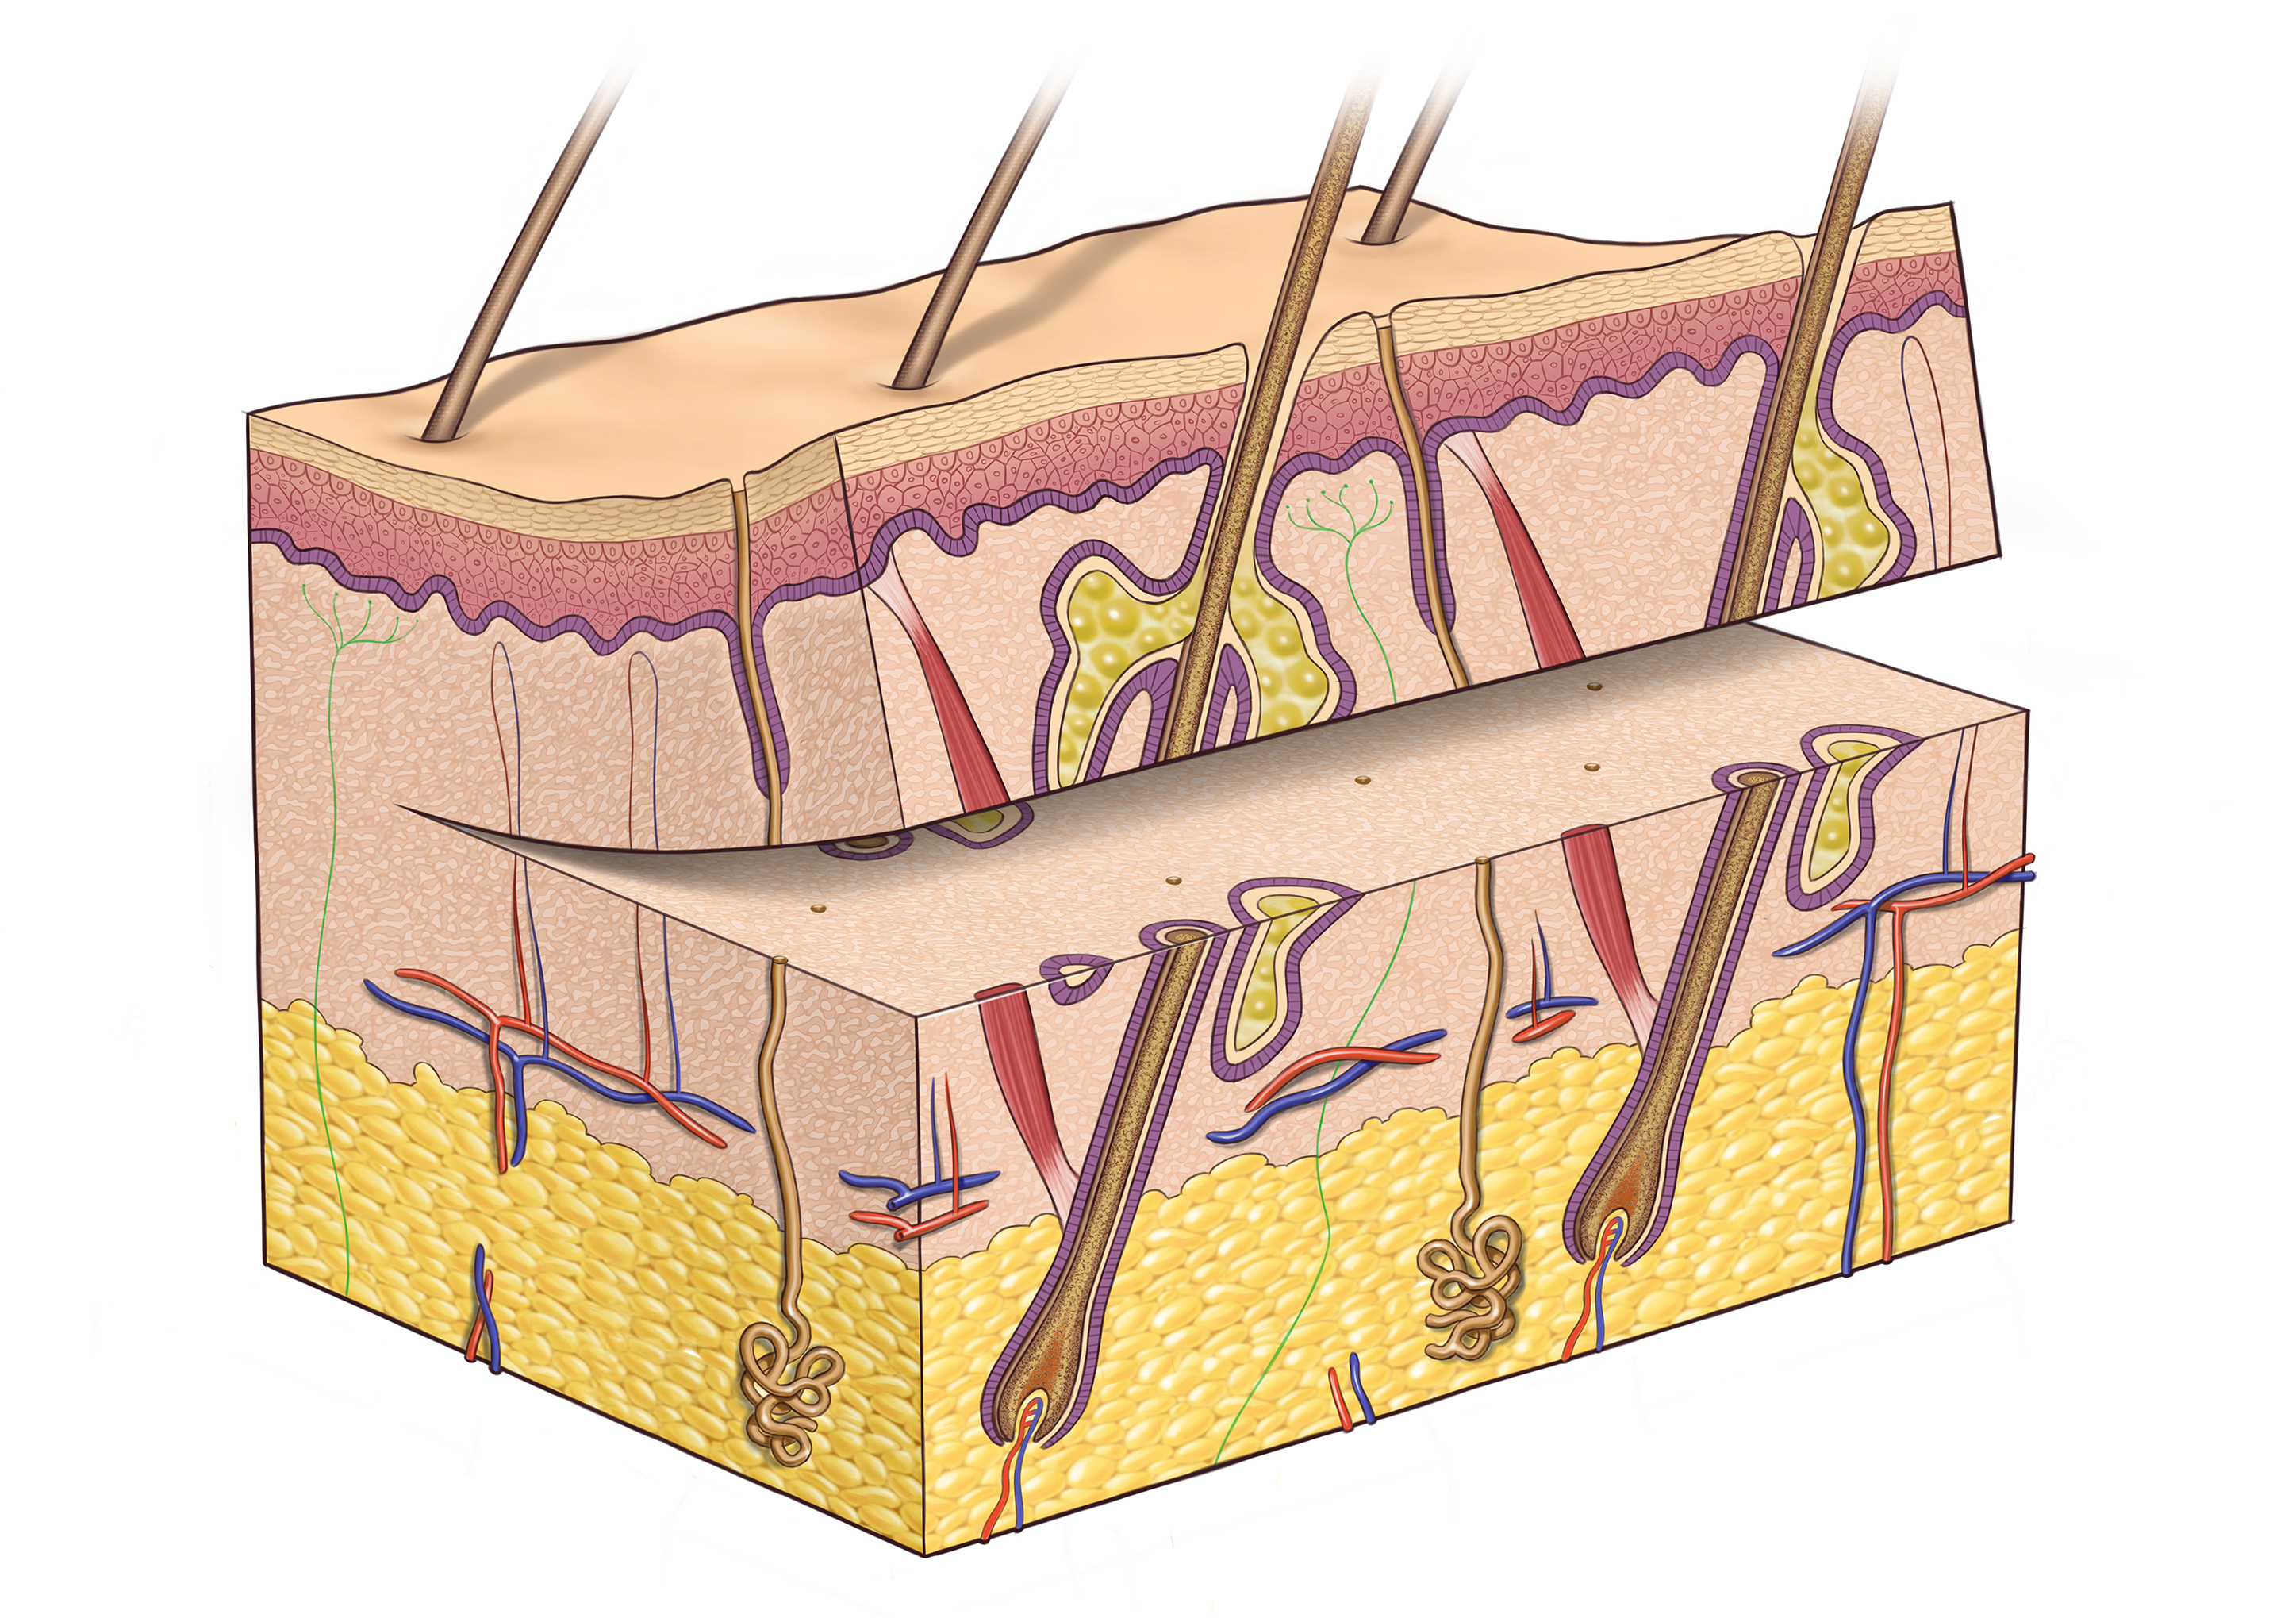 Partial skin graft